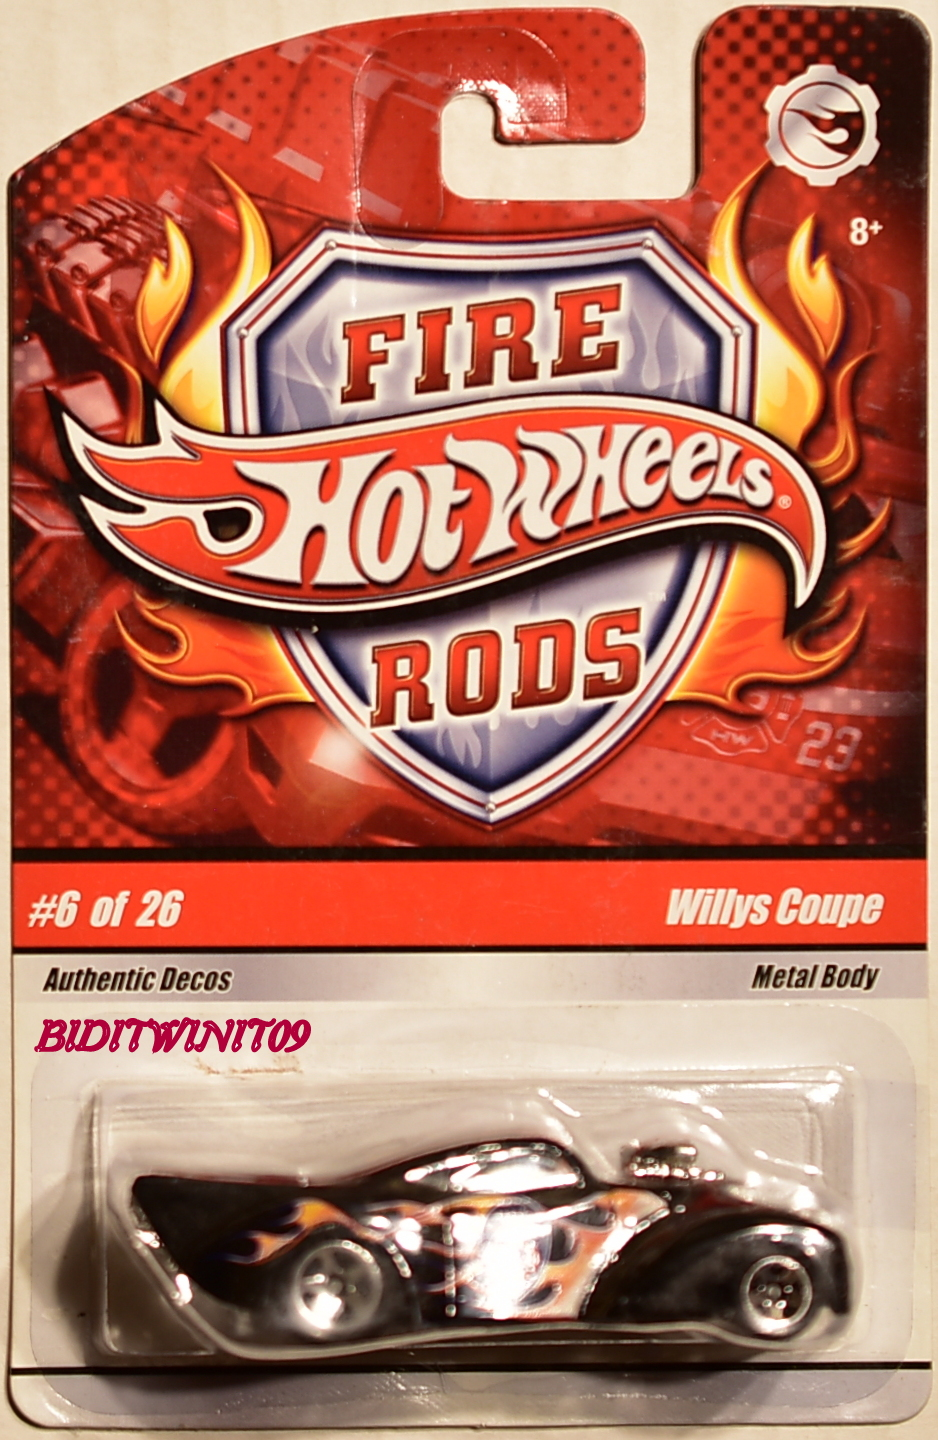 HOT WHEELS 2008 FIRE RODS WILLYS COUPE #6/26